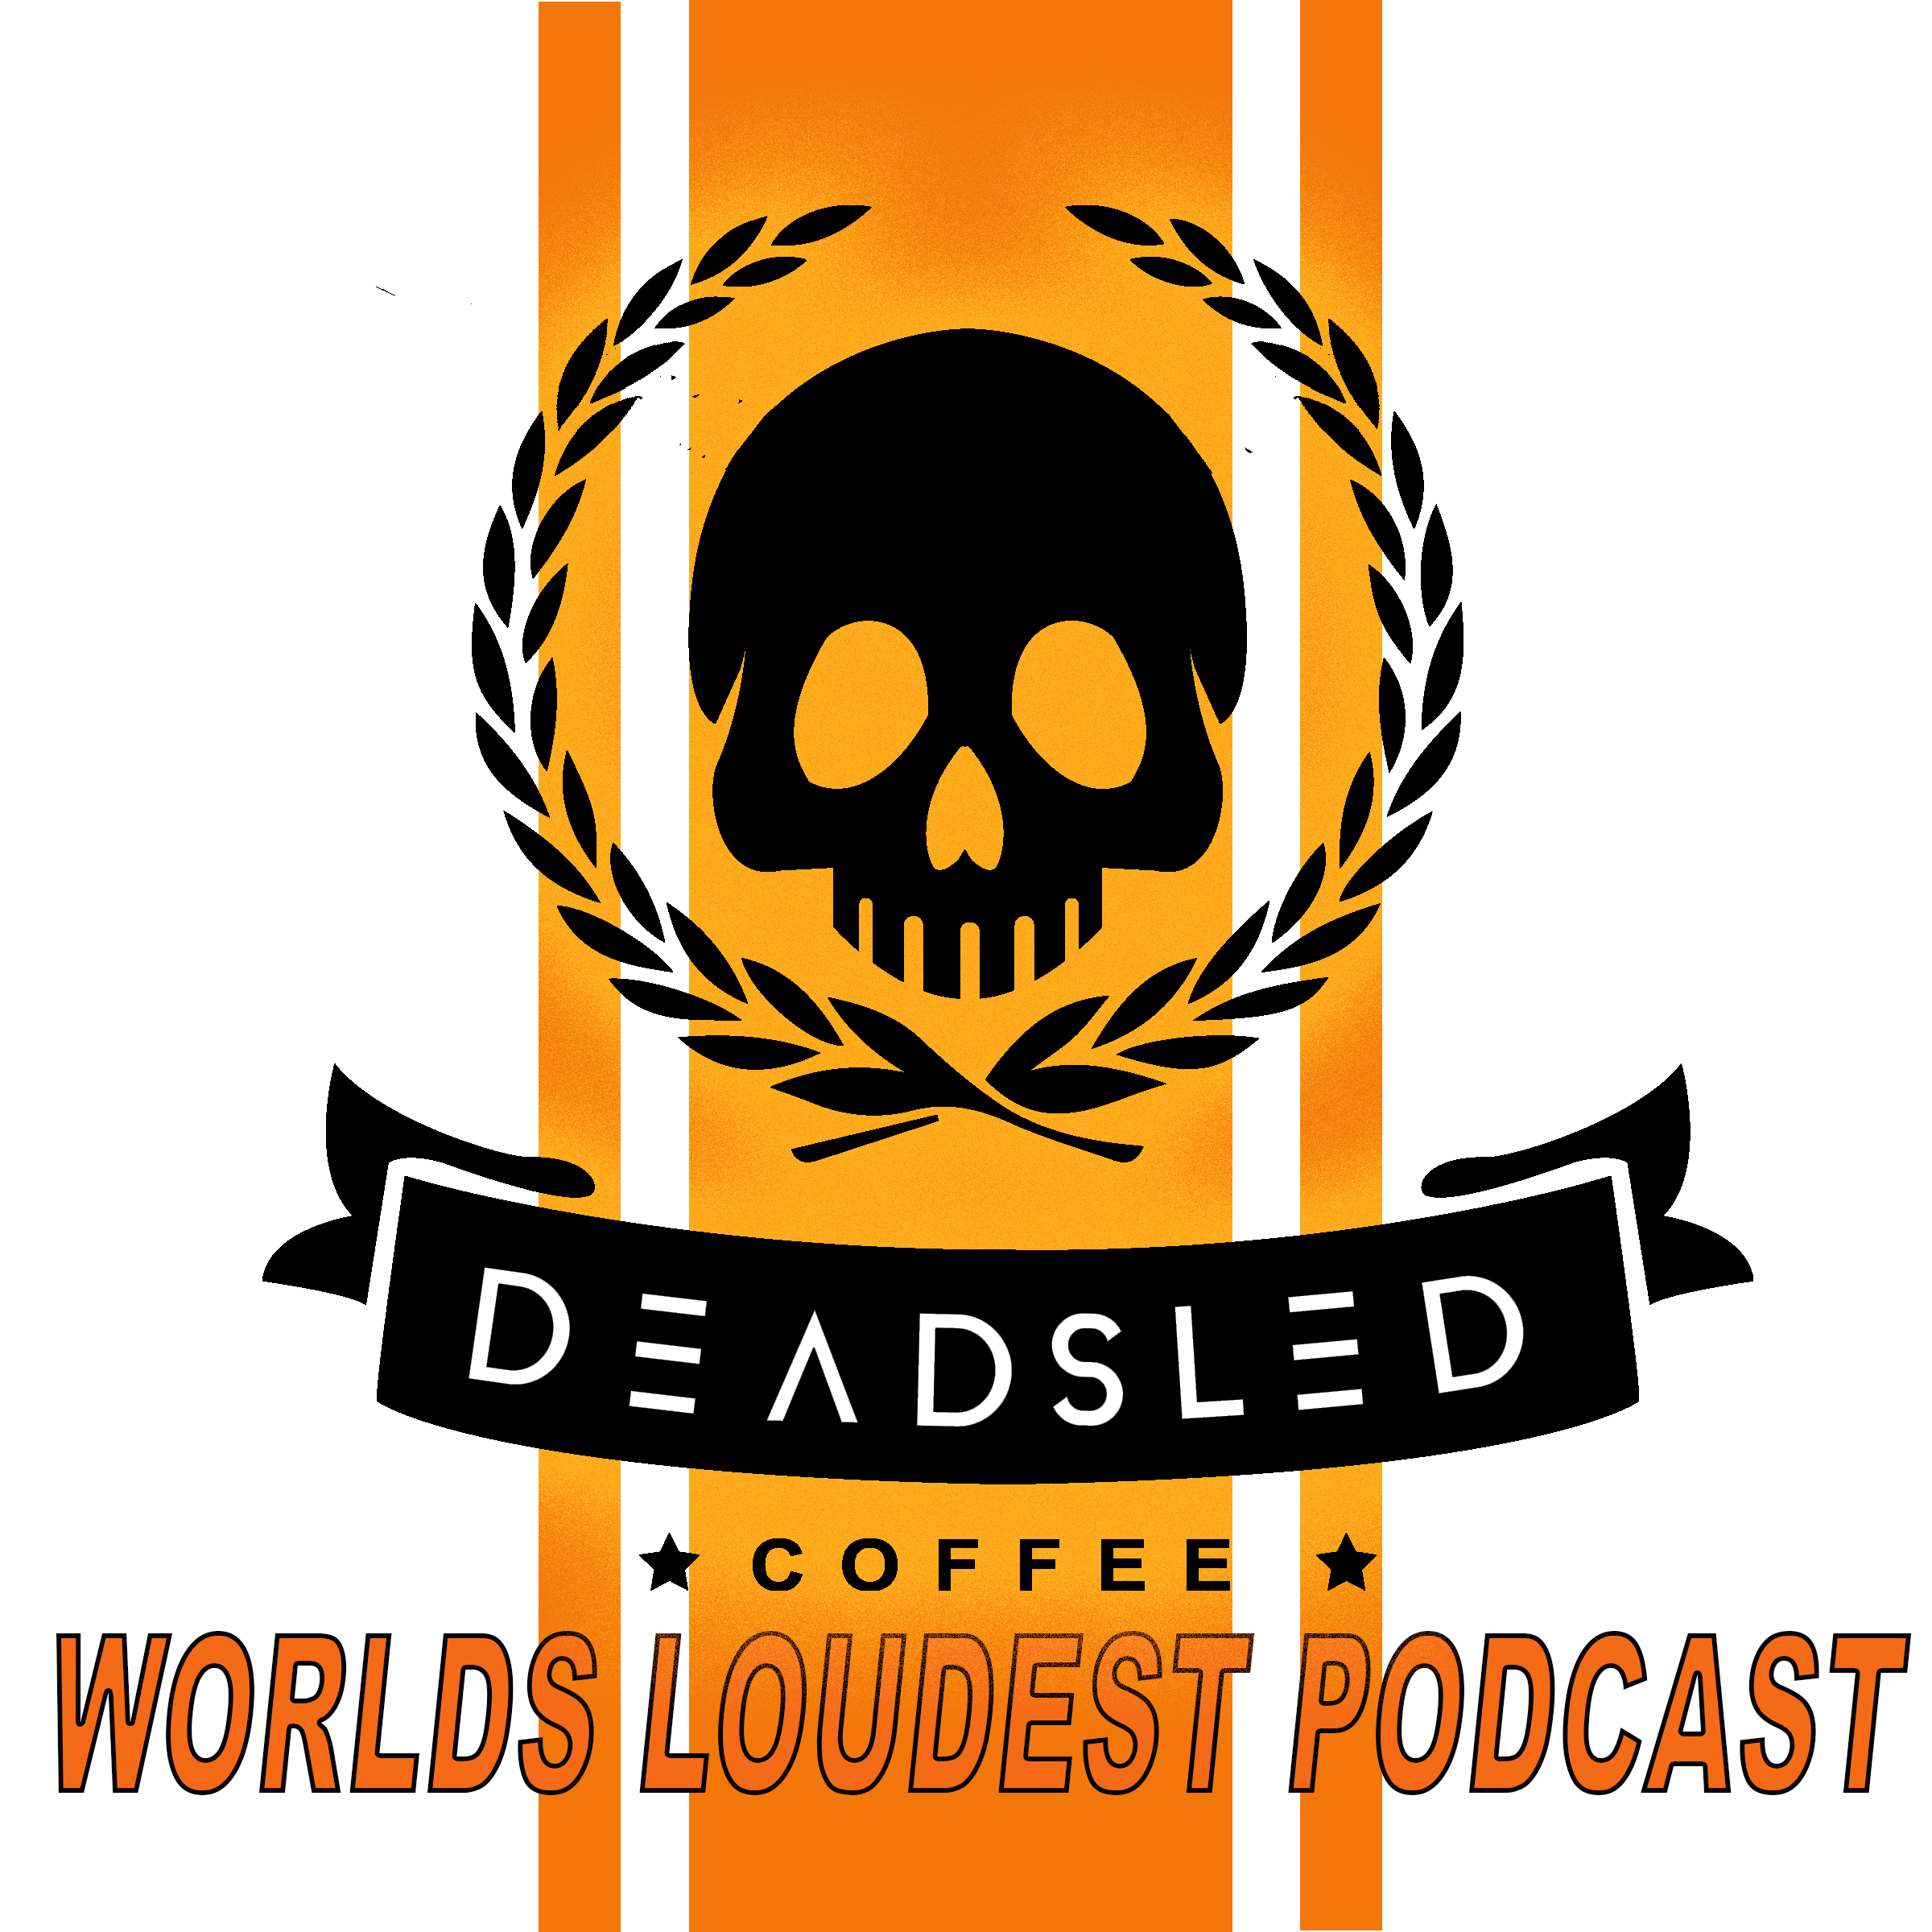 Worlds Loudest Podcast